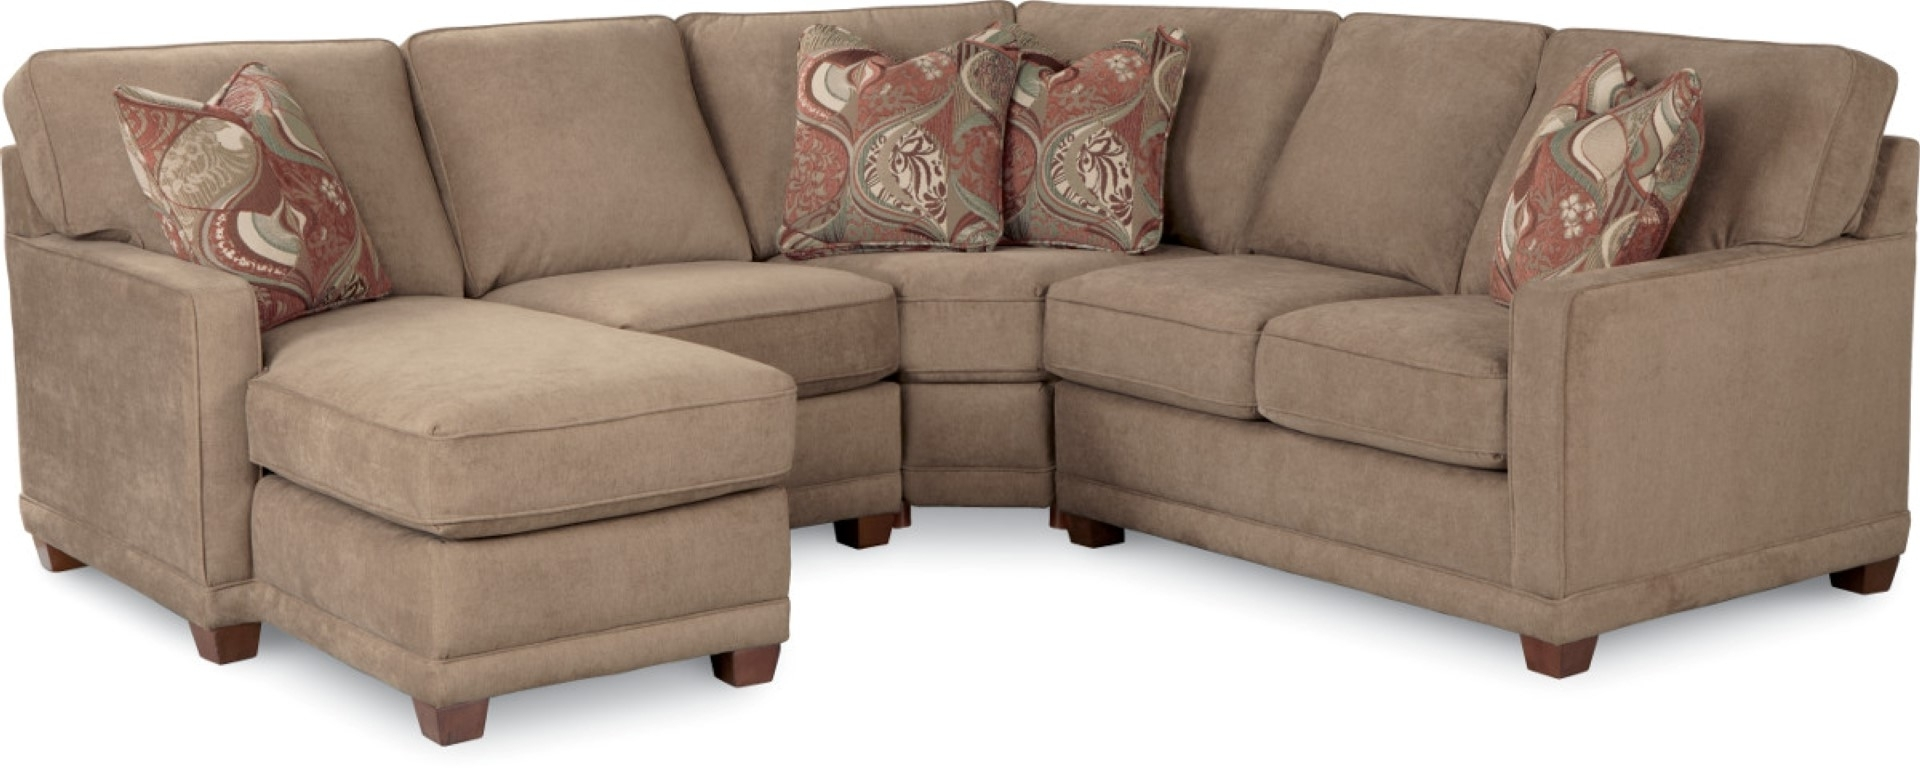 Featured Photo of Lazyboy Sectional Sofas